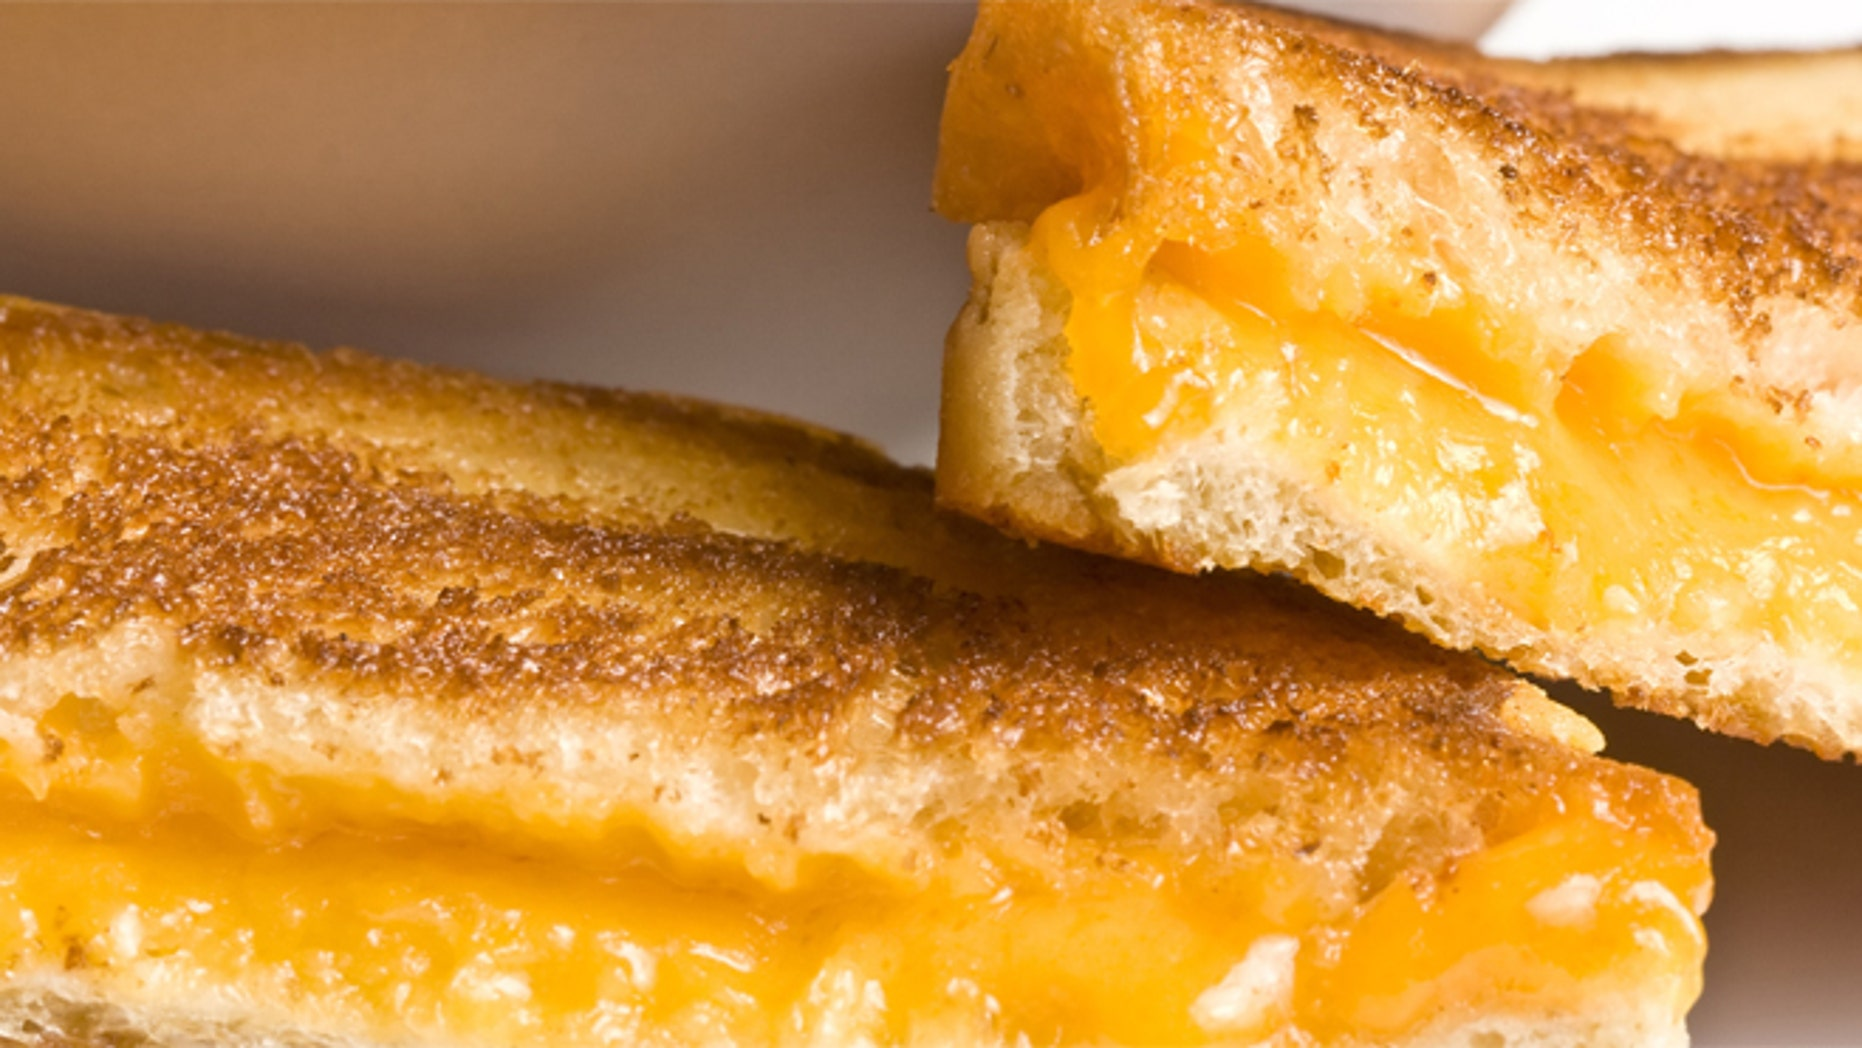 Grilled cheese sandwich fans have more sex, a new study has found.